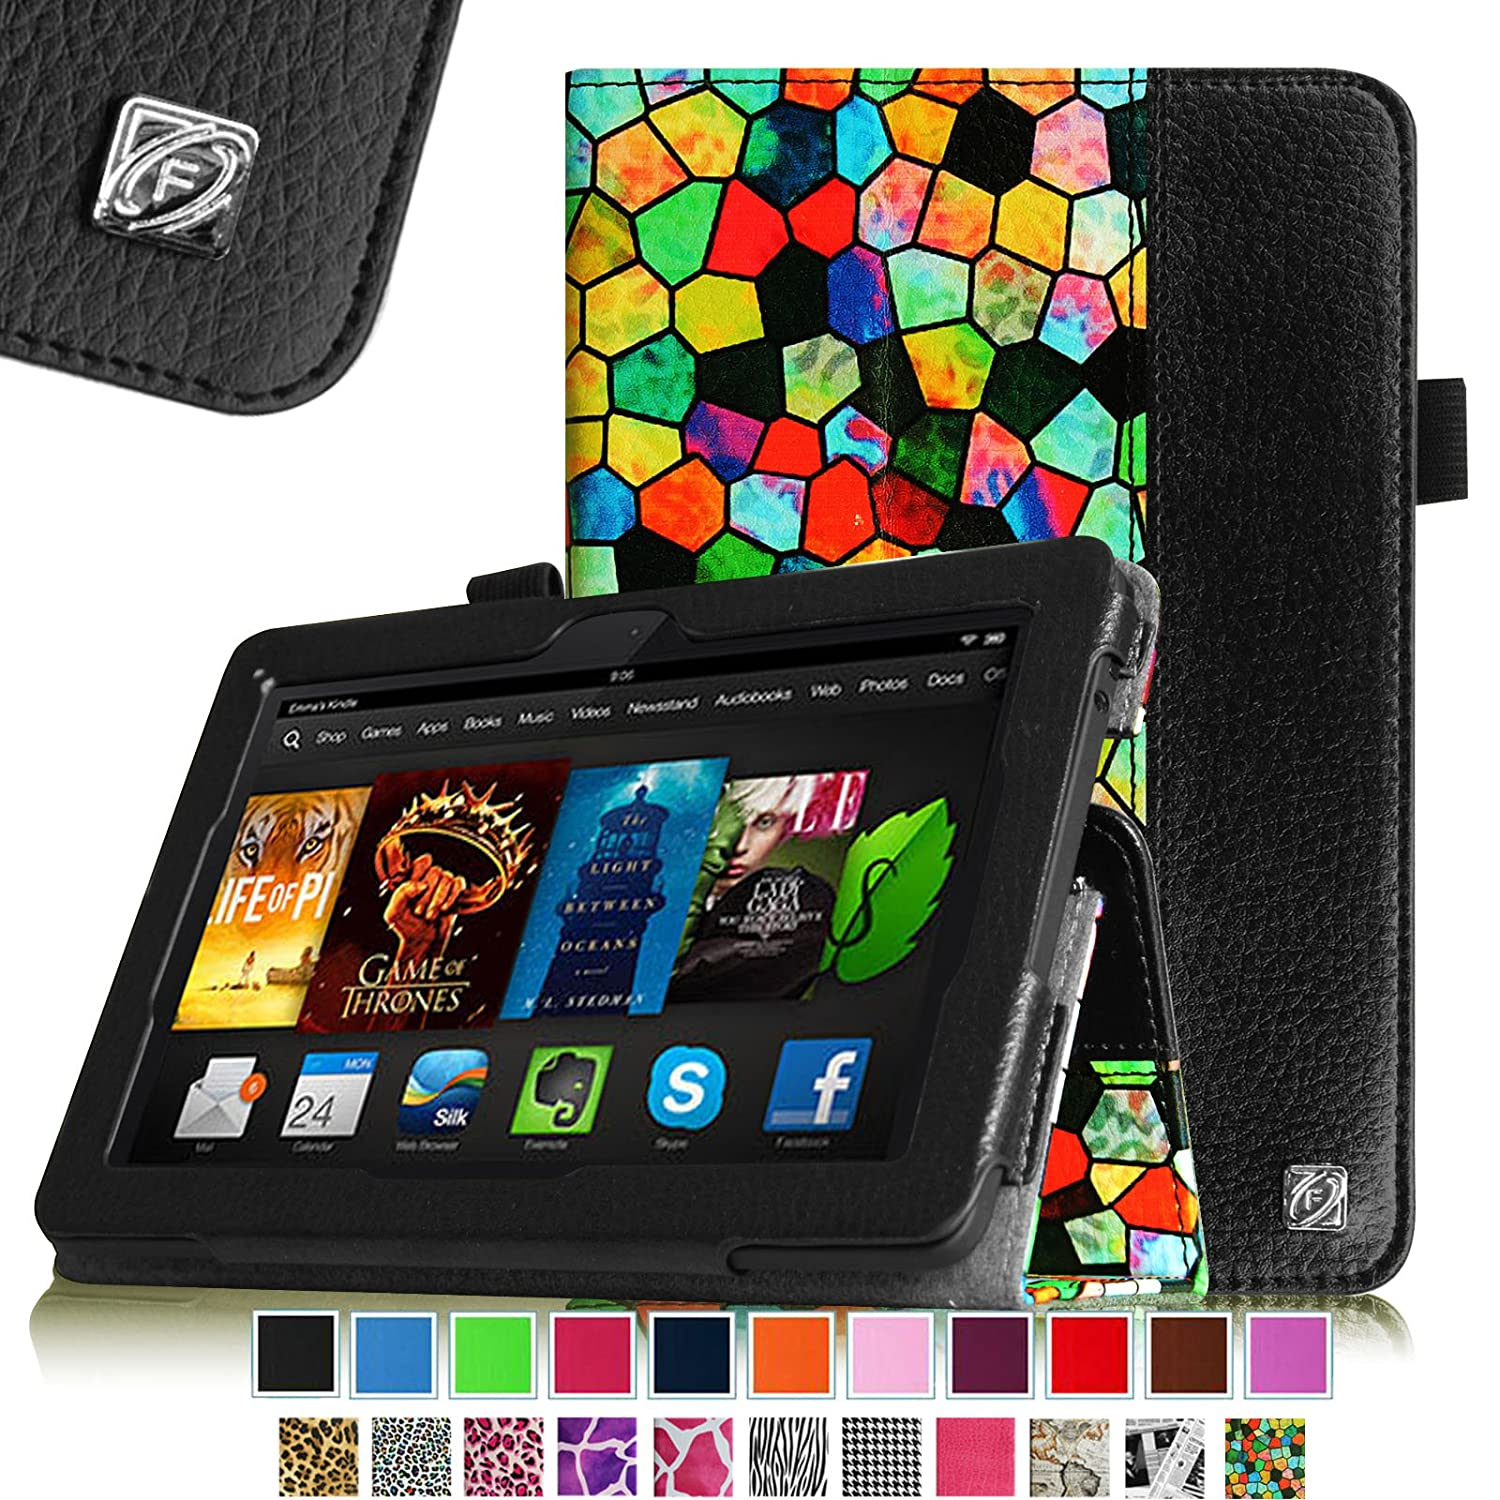 Kindle Fire Hdx 7 Cases For Kids Webnuggetz Com